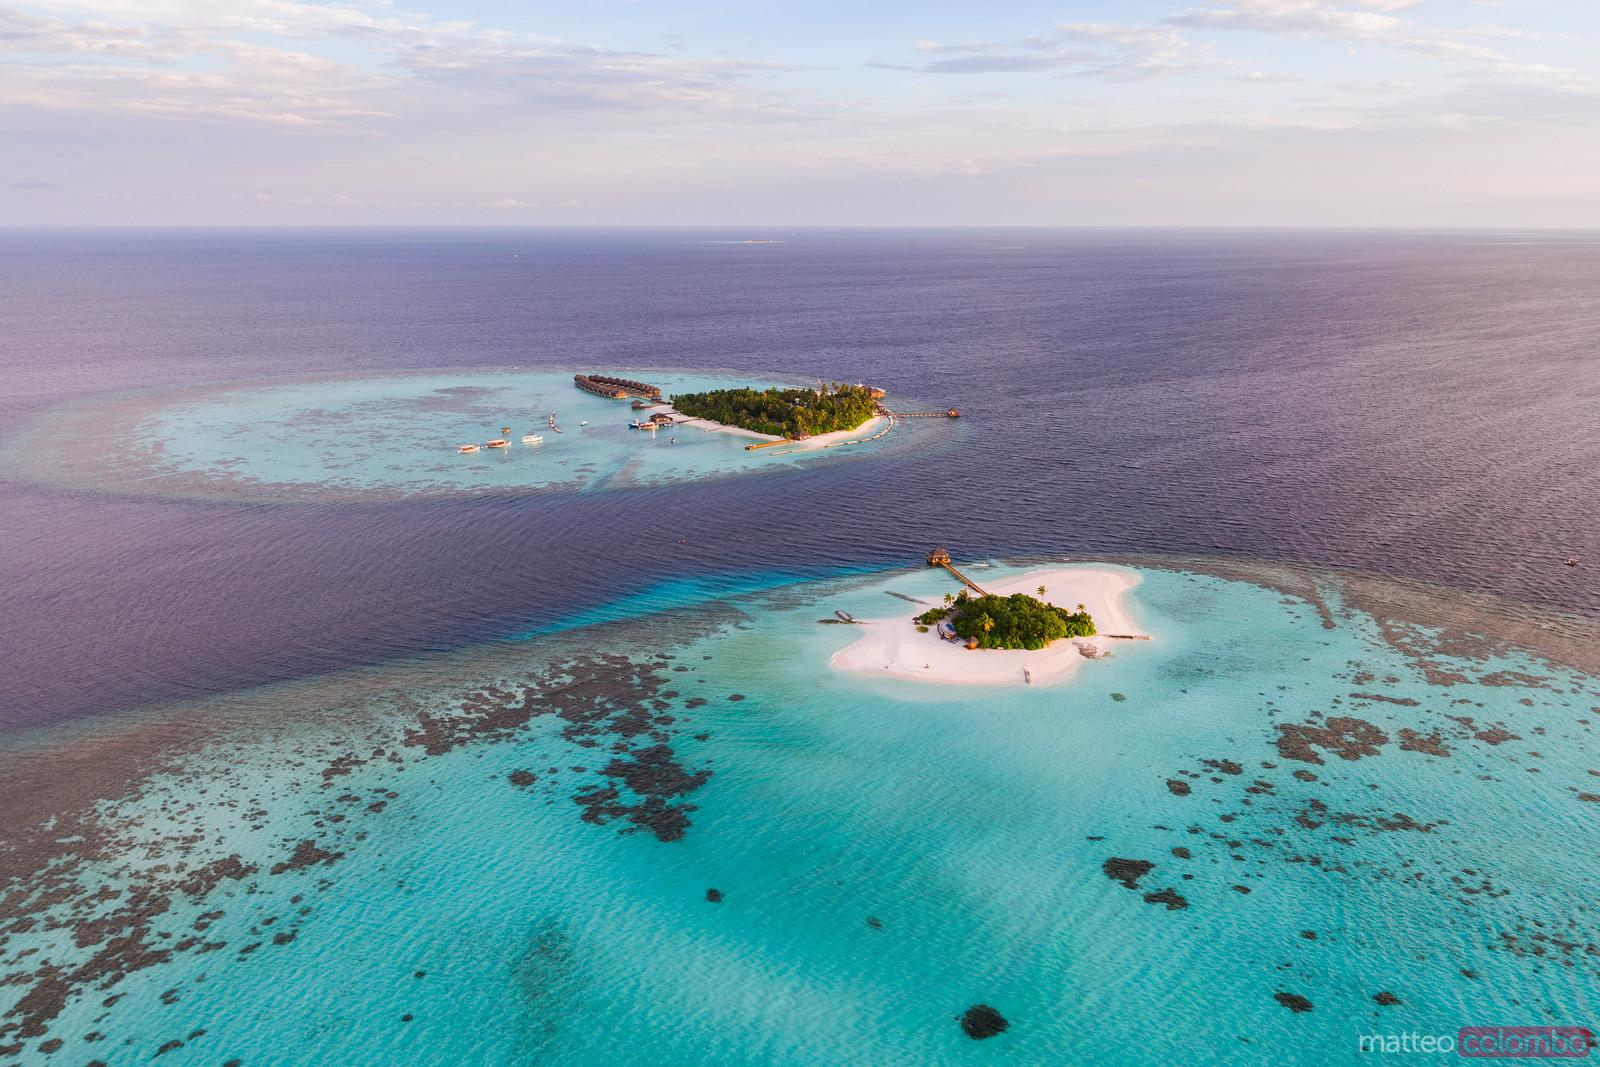 Drone-View of the Islands